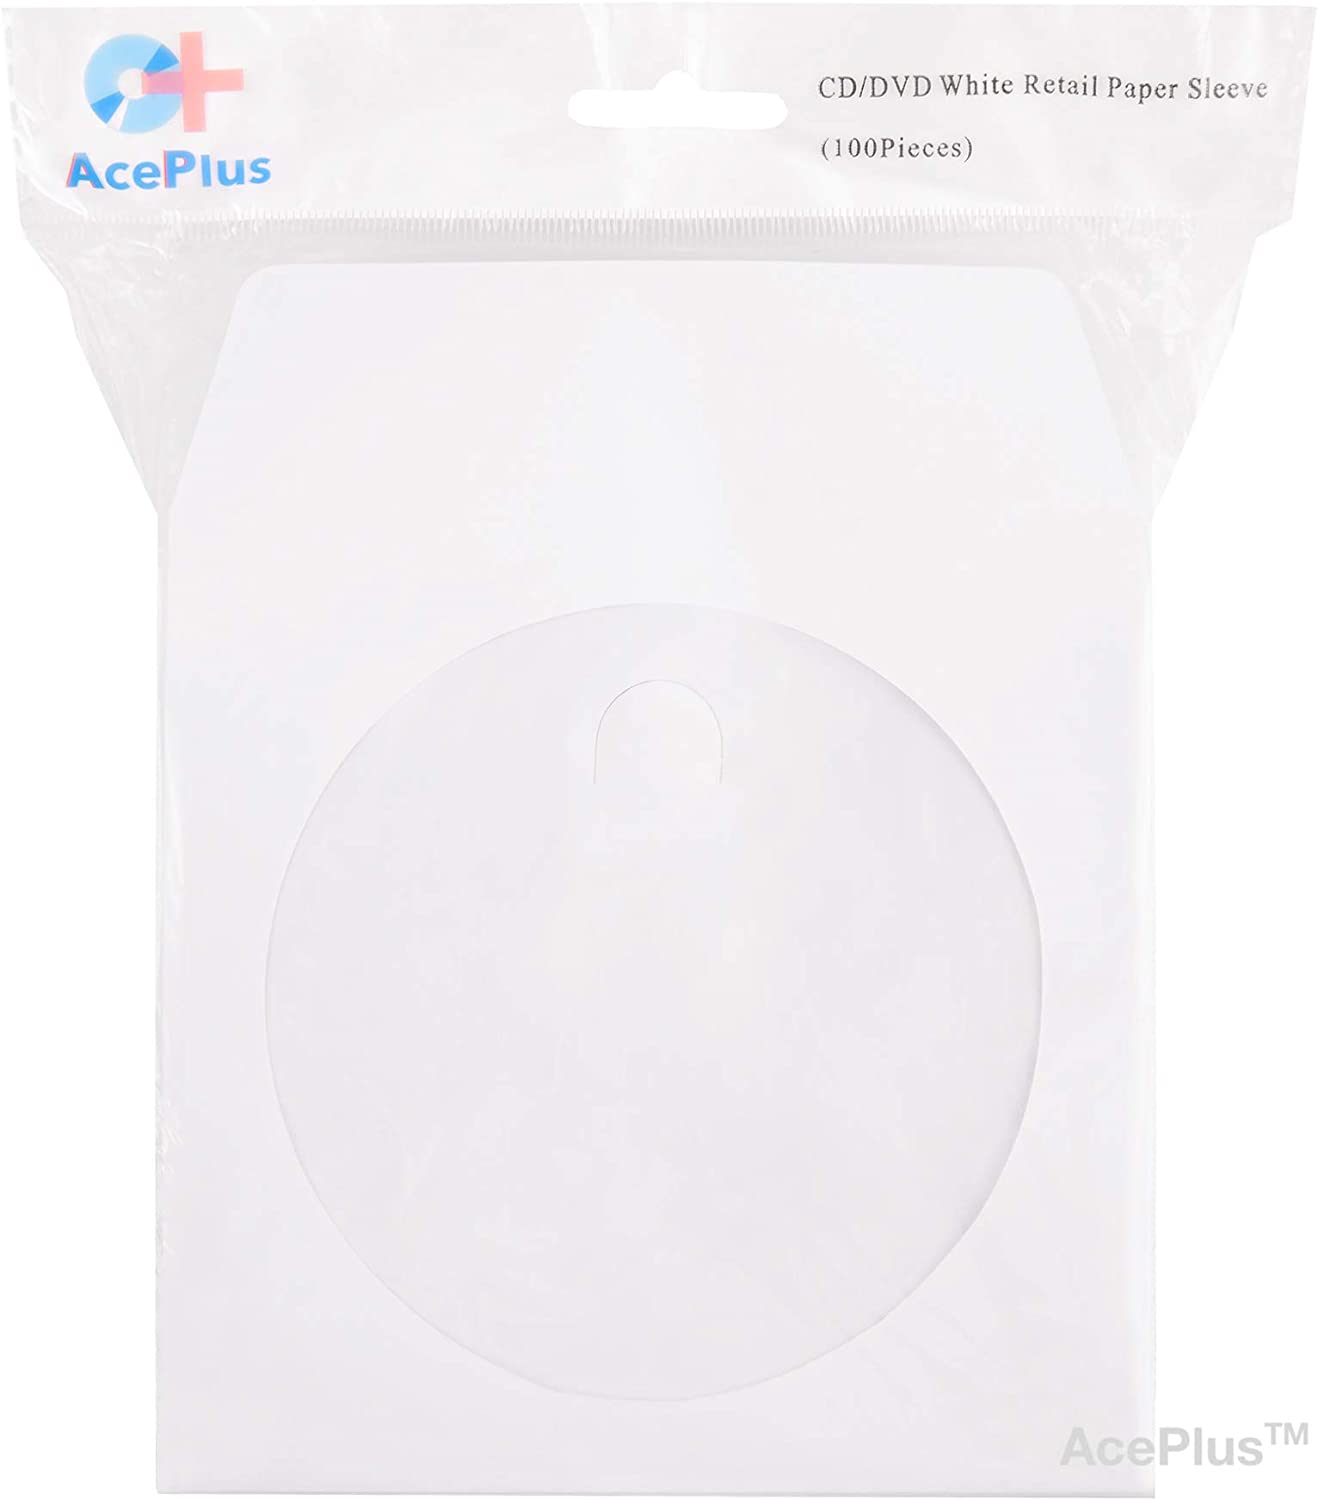 Envelopes with Clear Window and Flap with Close Tab AcePlus 1,000 Premium White Paper Sleeves 100g Weight for CD 1 Box of 10 packs x 100 Sleeves DVDs